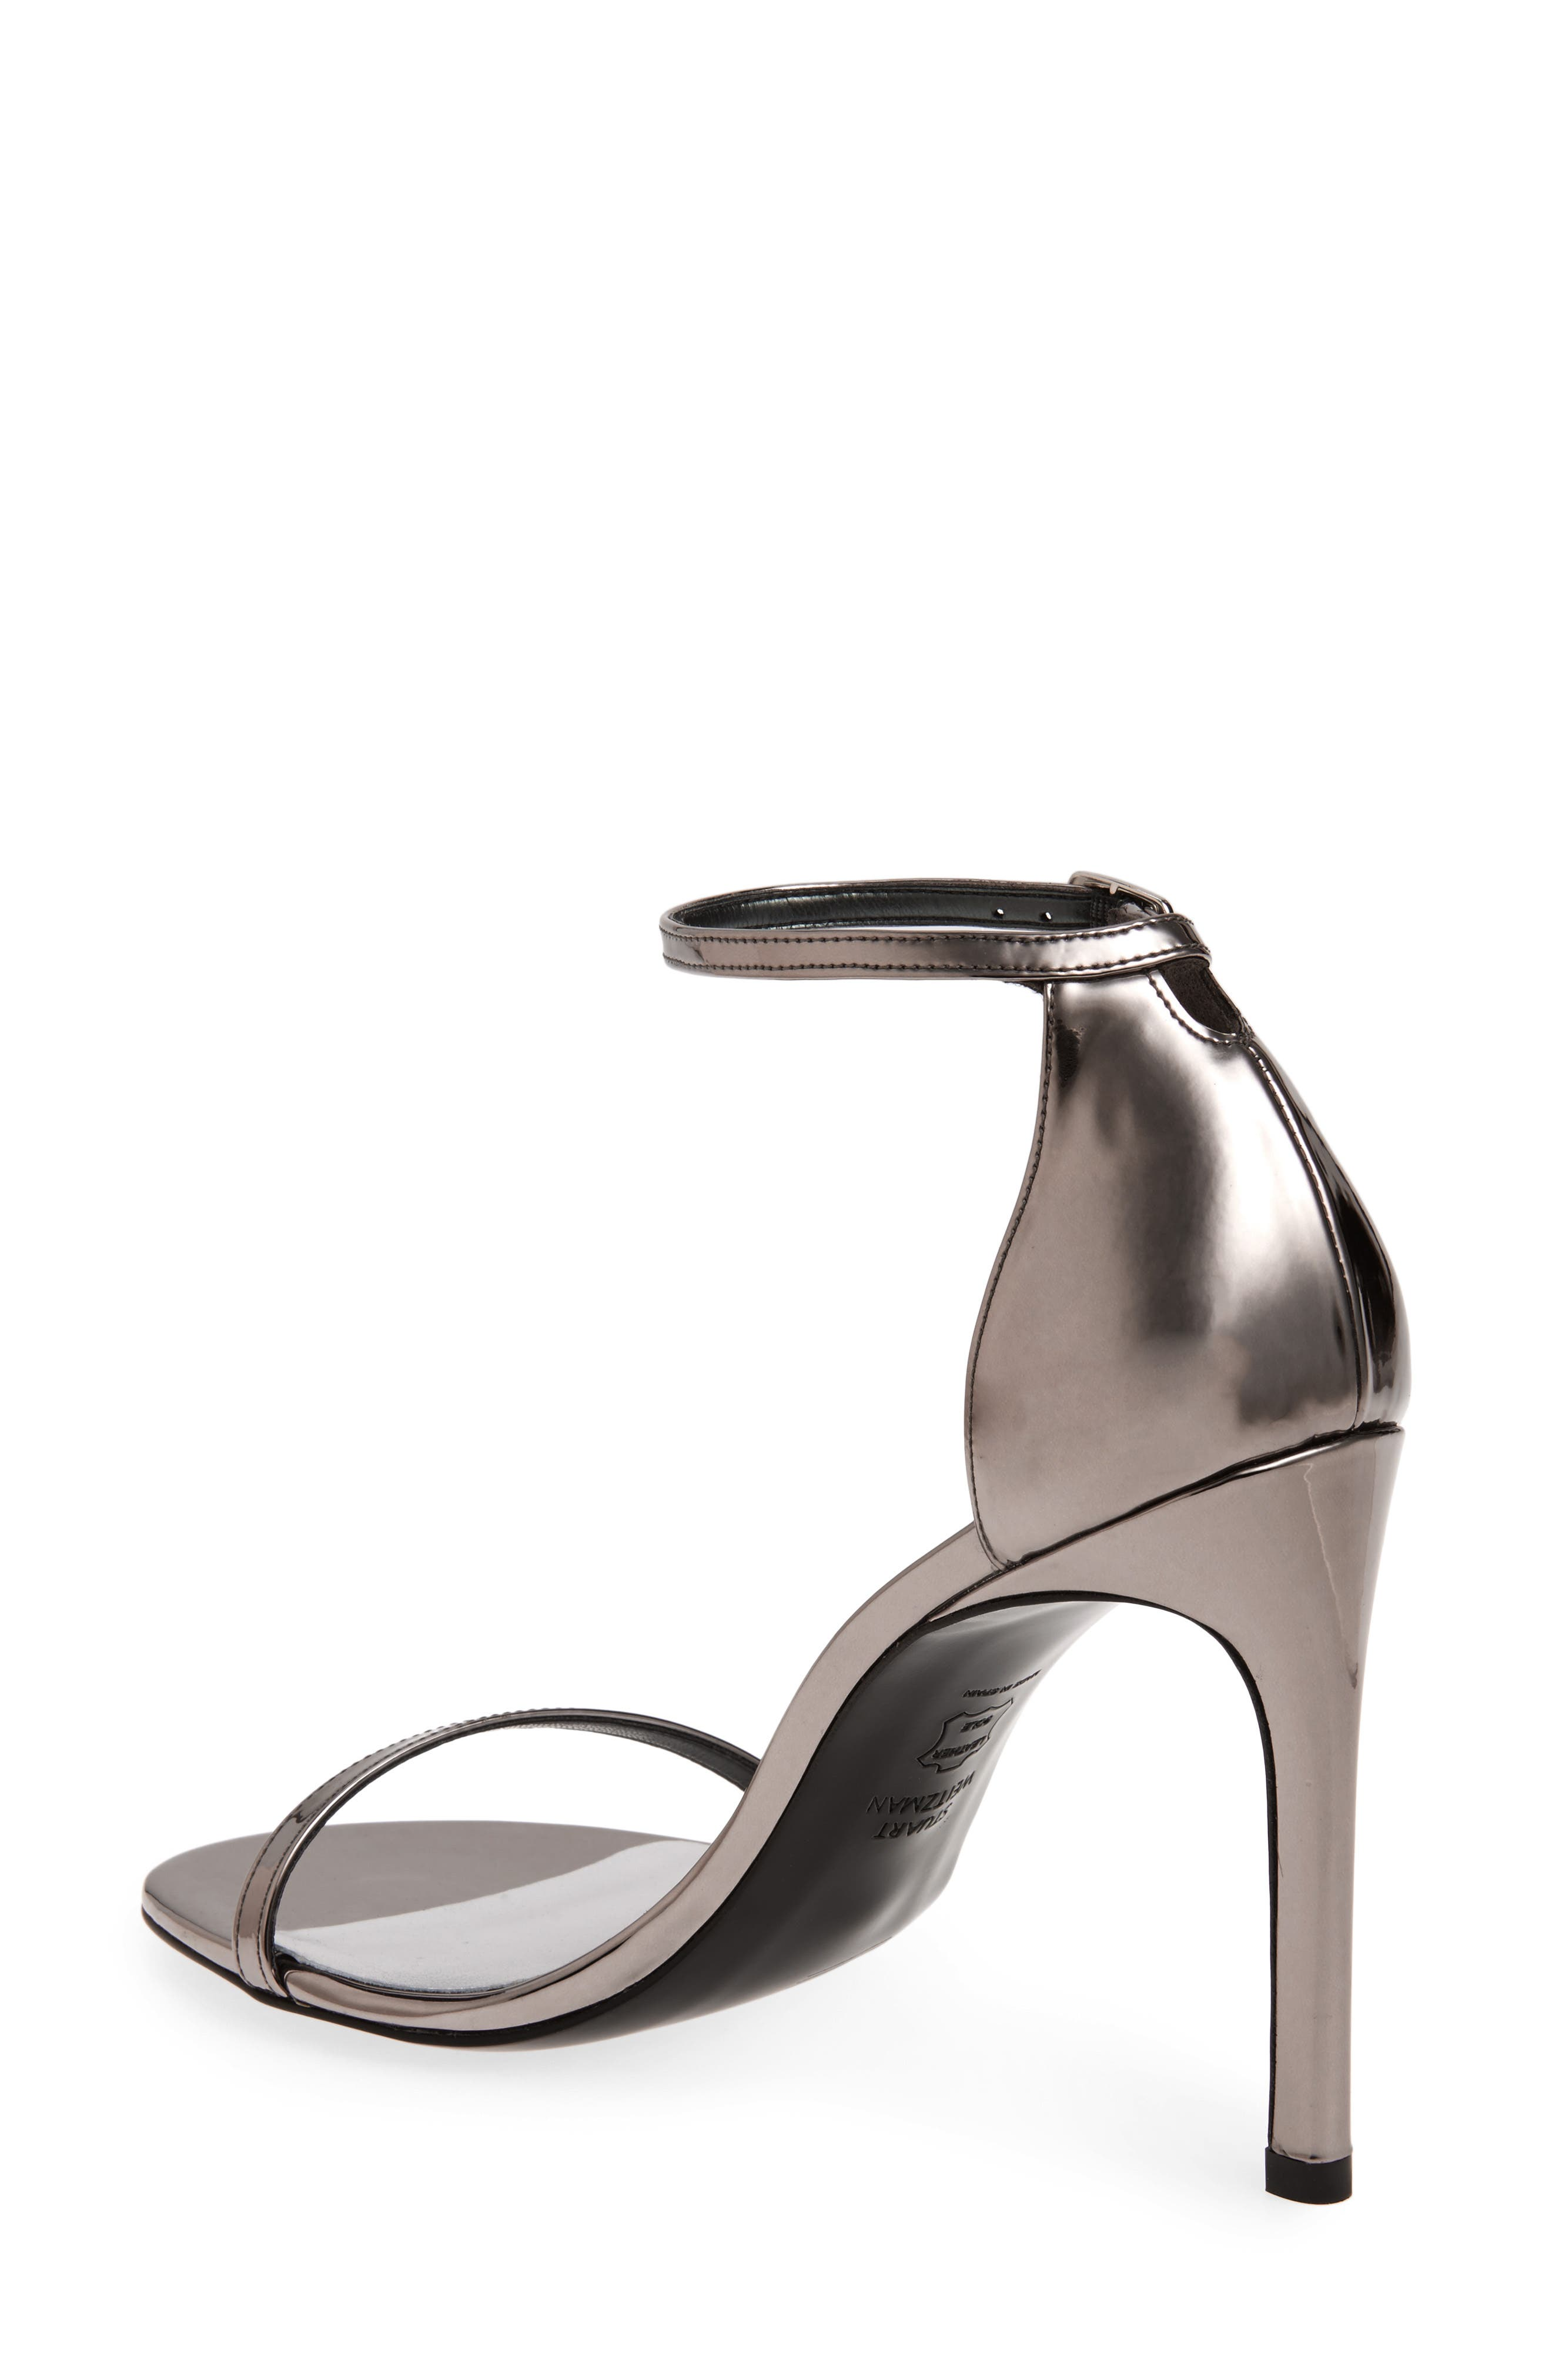 Nudistsong Ankle Strap Sandal,                             Alternate thumbnail 2, color,                             PEWTER GLASS